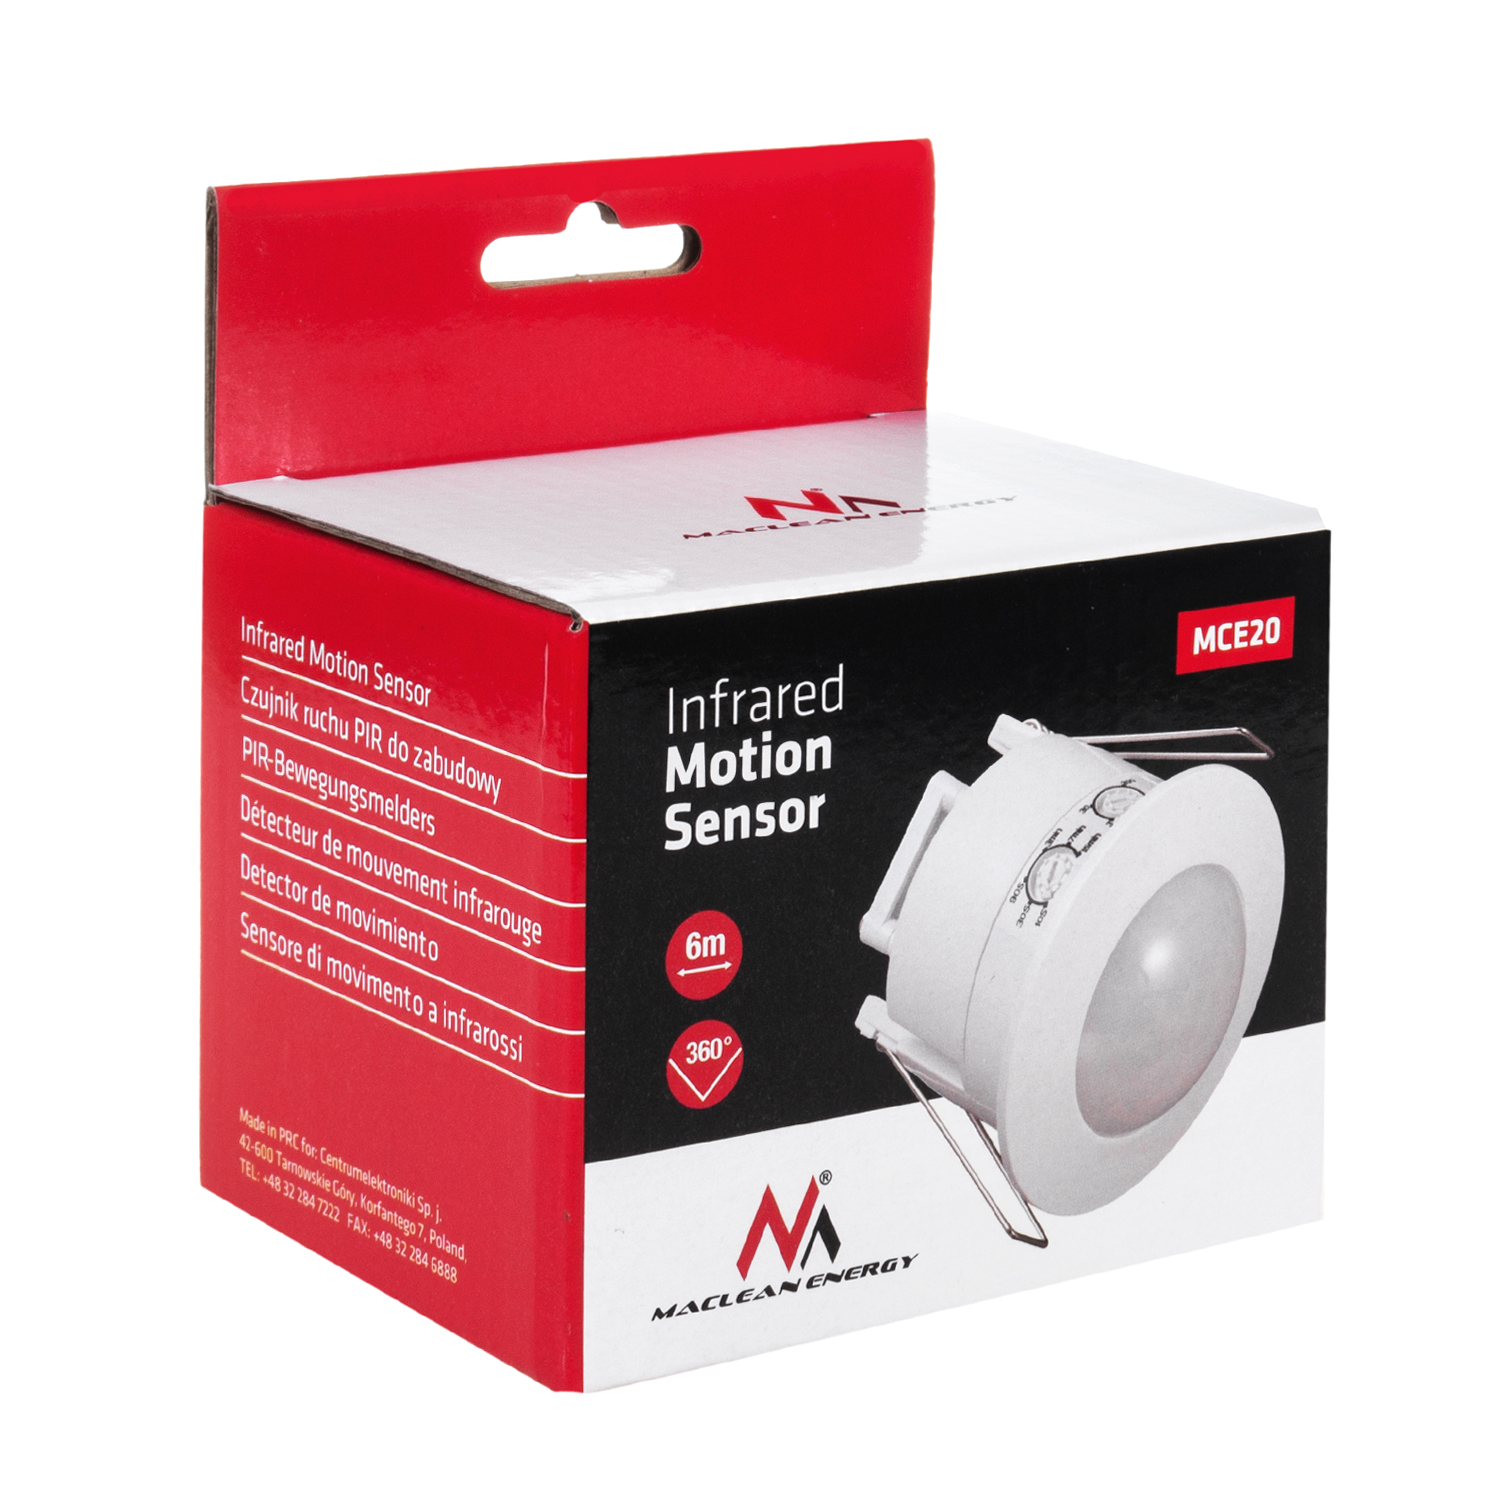 Ceiling Pir Motion Switch Security Sensor Light 360 Angle